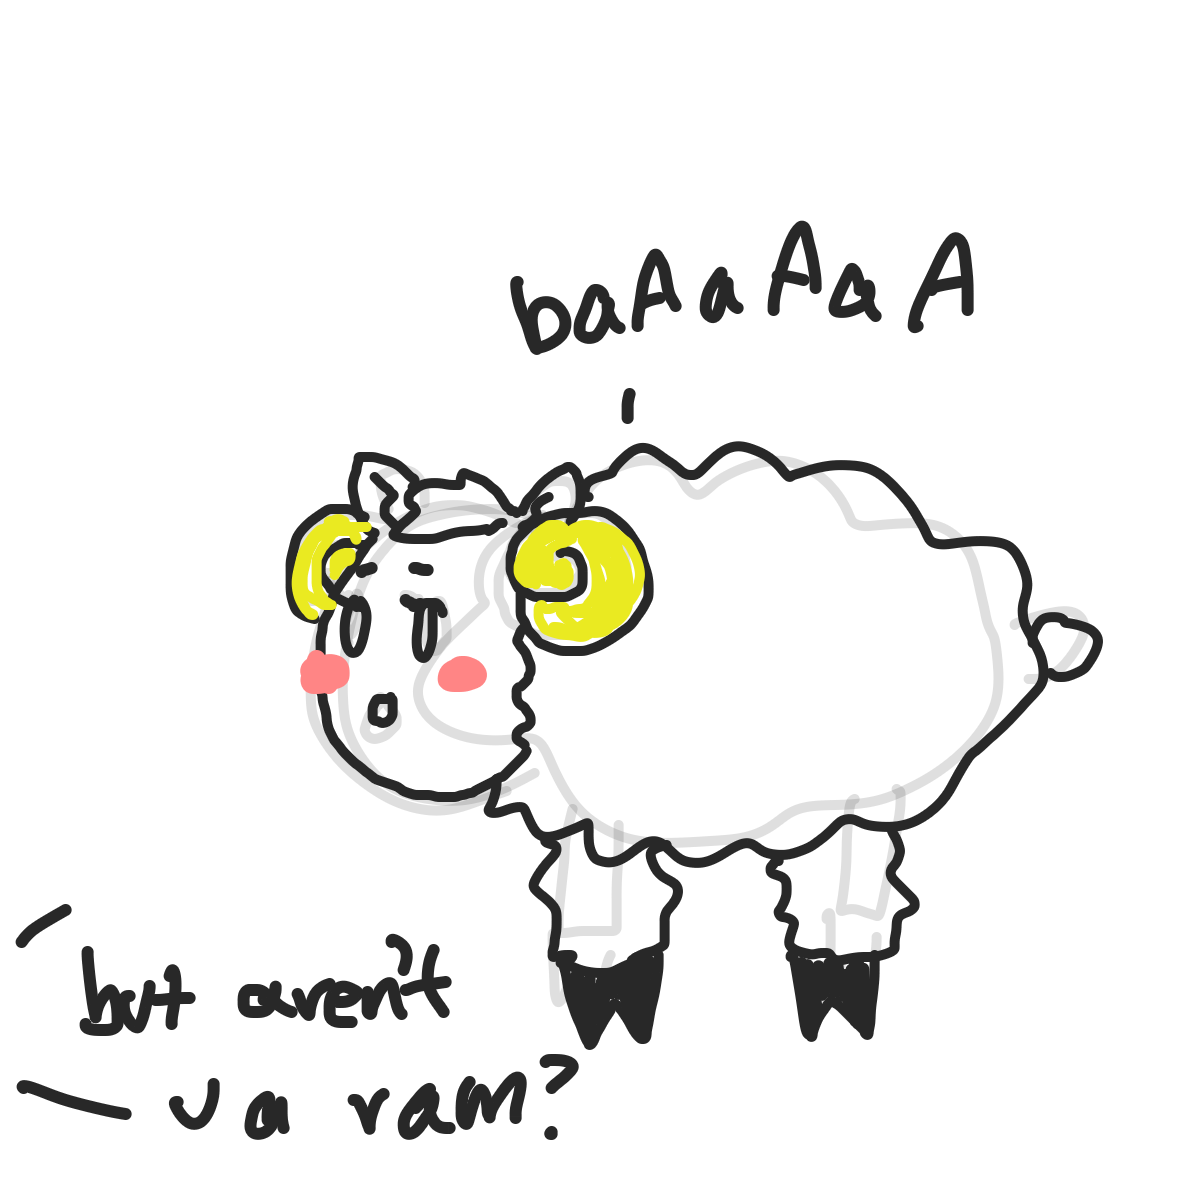 First panel in sheepy drawn in our free online drawing game